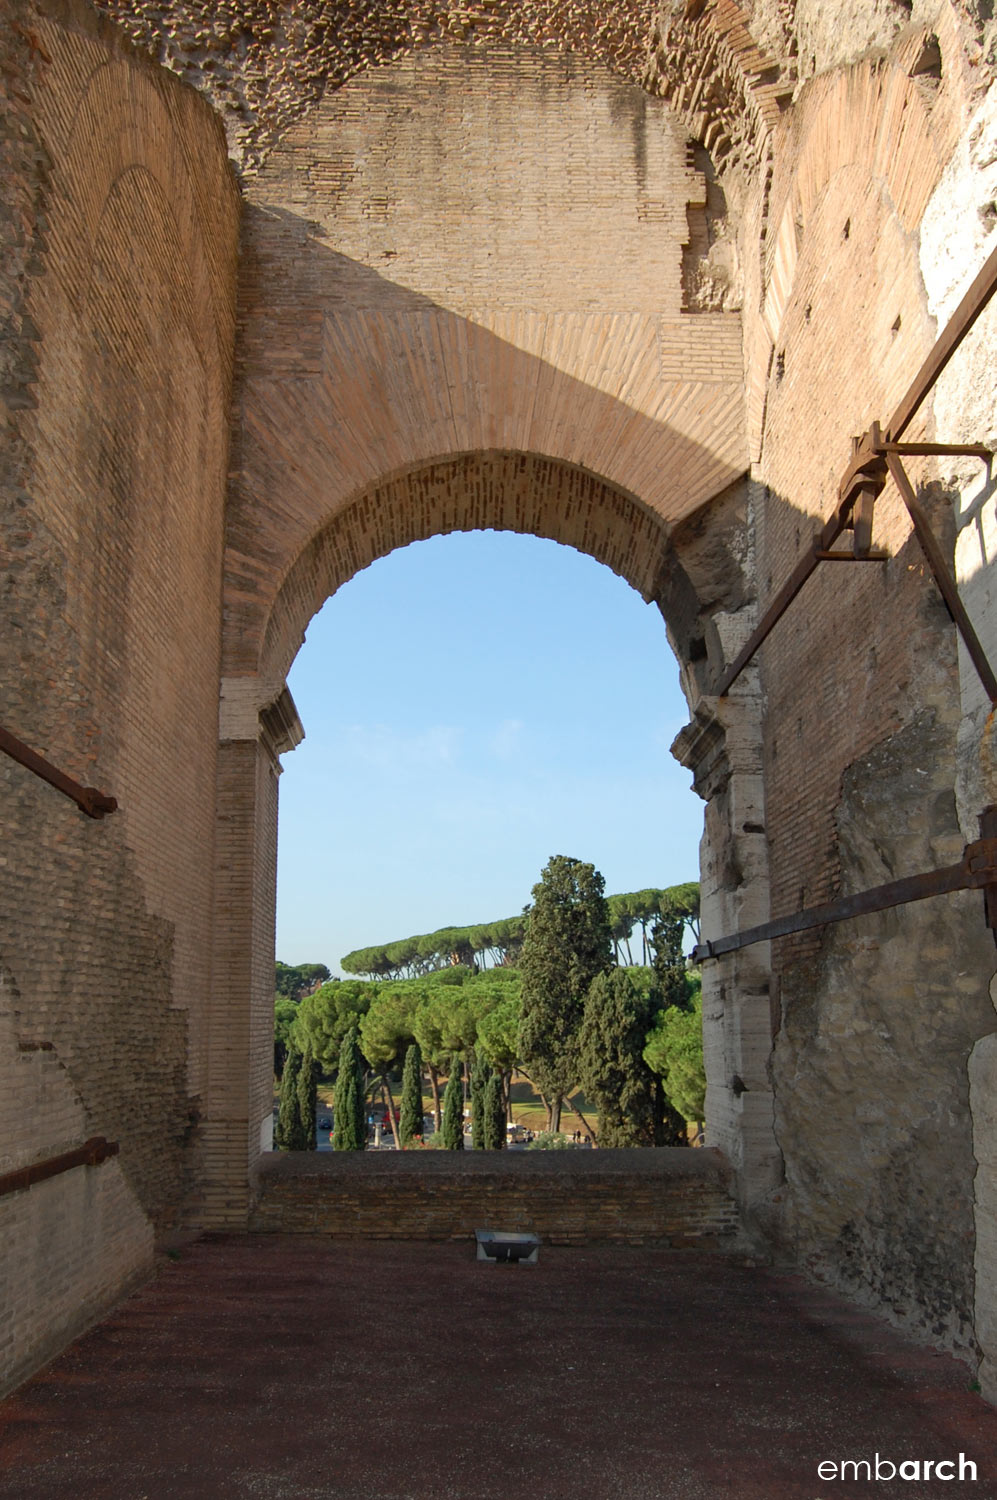 Colosseum - view through arch